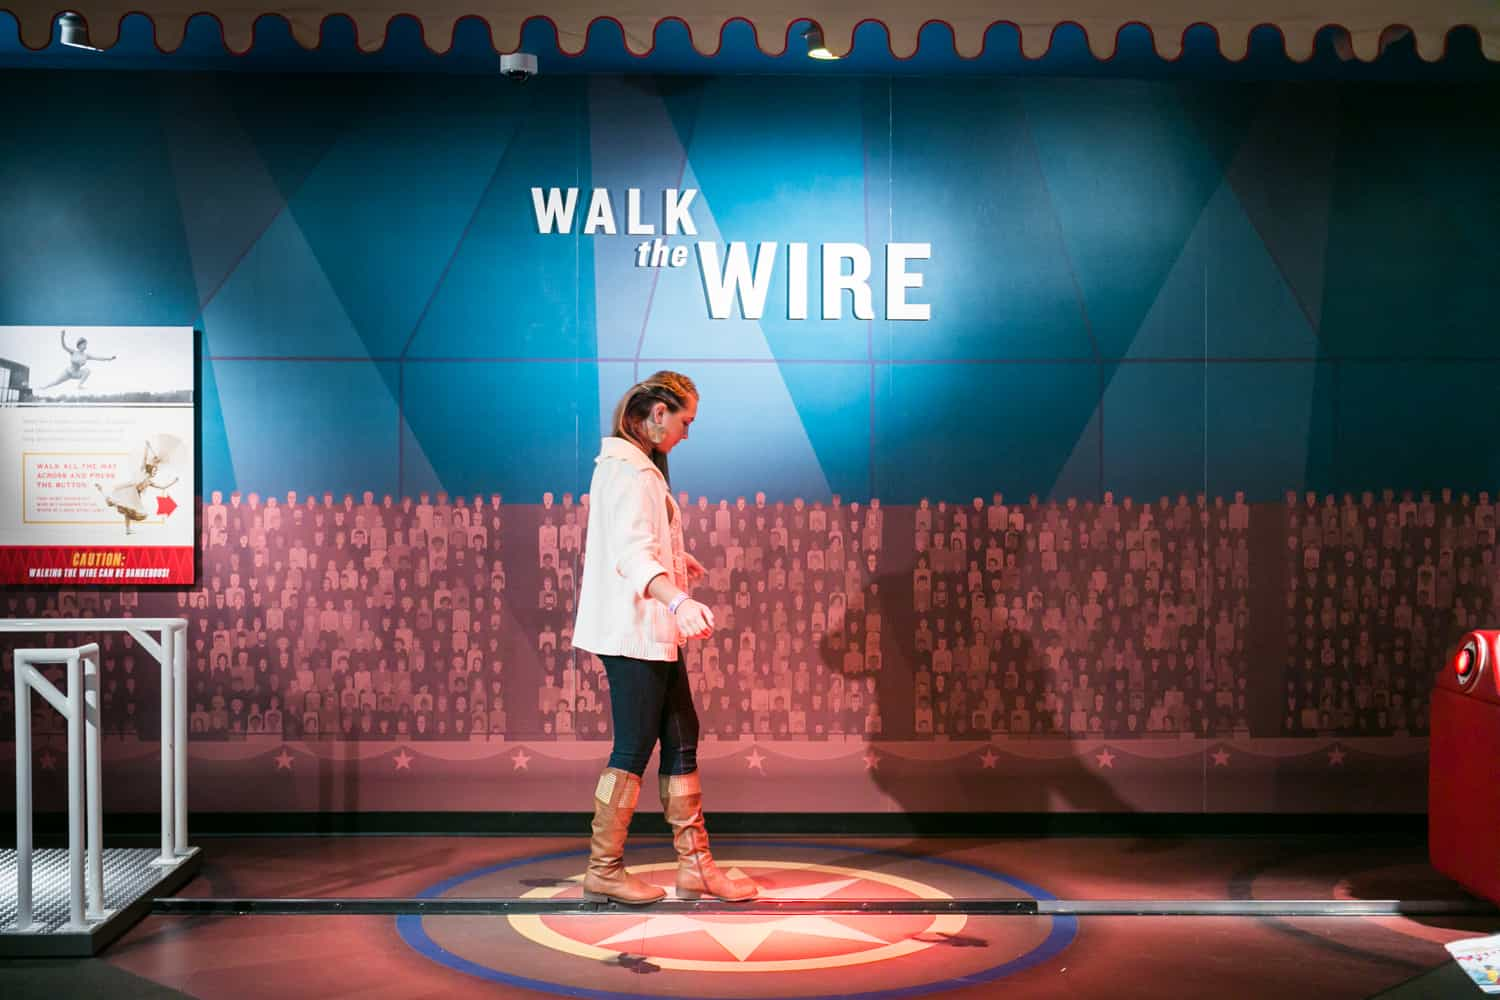 Photos of Sarasota including woman walking the wire in Circus Museum at The Ringling